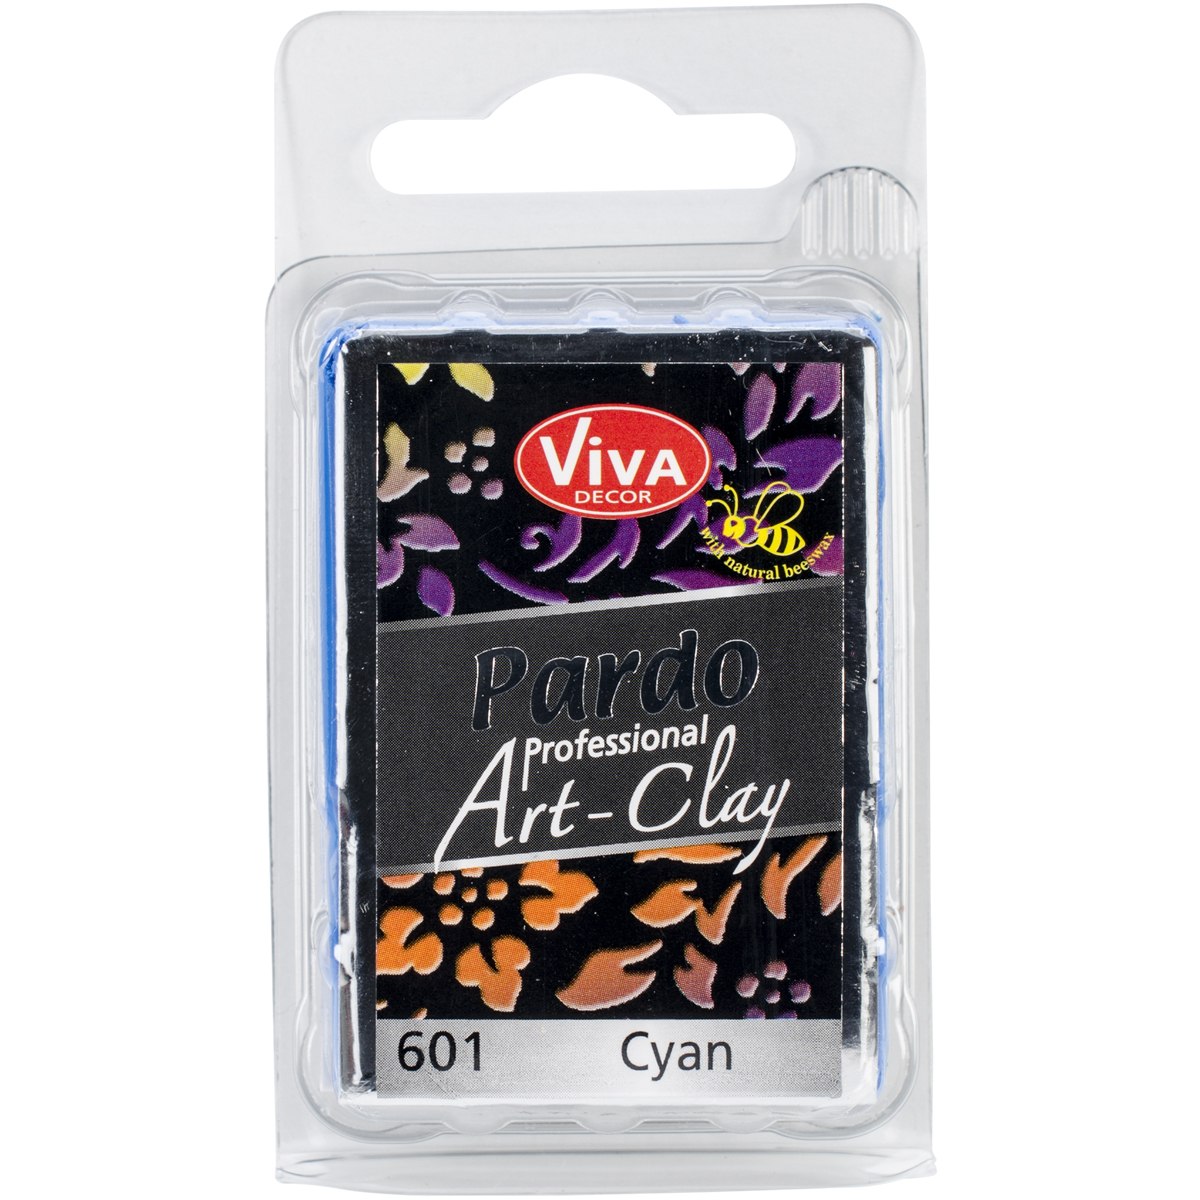 PARDO Art Clay 56g-Cyan